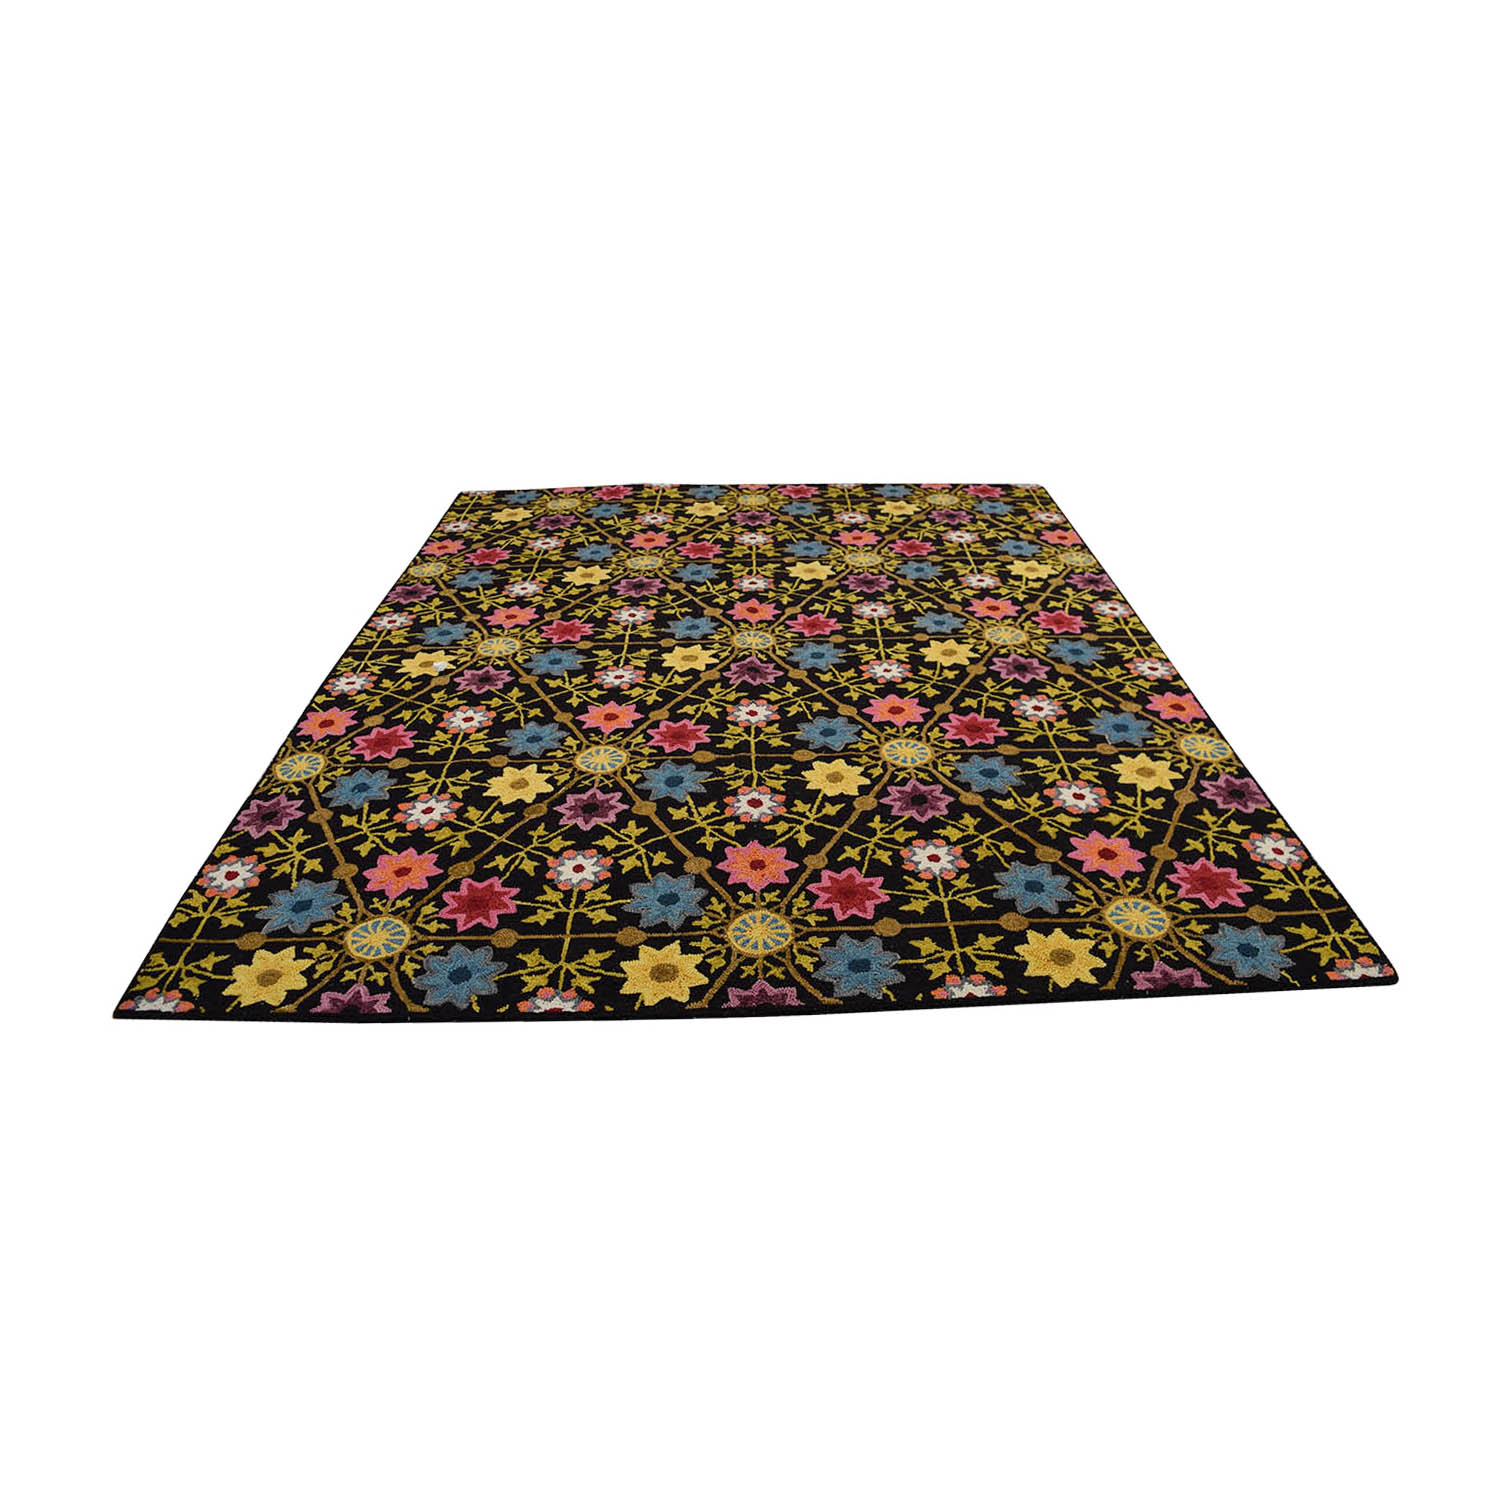 buy Obeetee Obeetee Black with Multi-Colored Floral Rug online